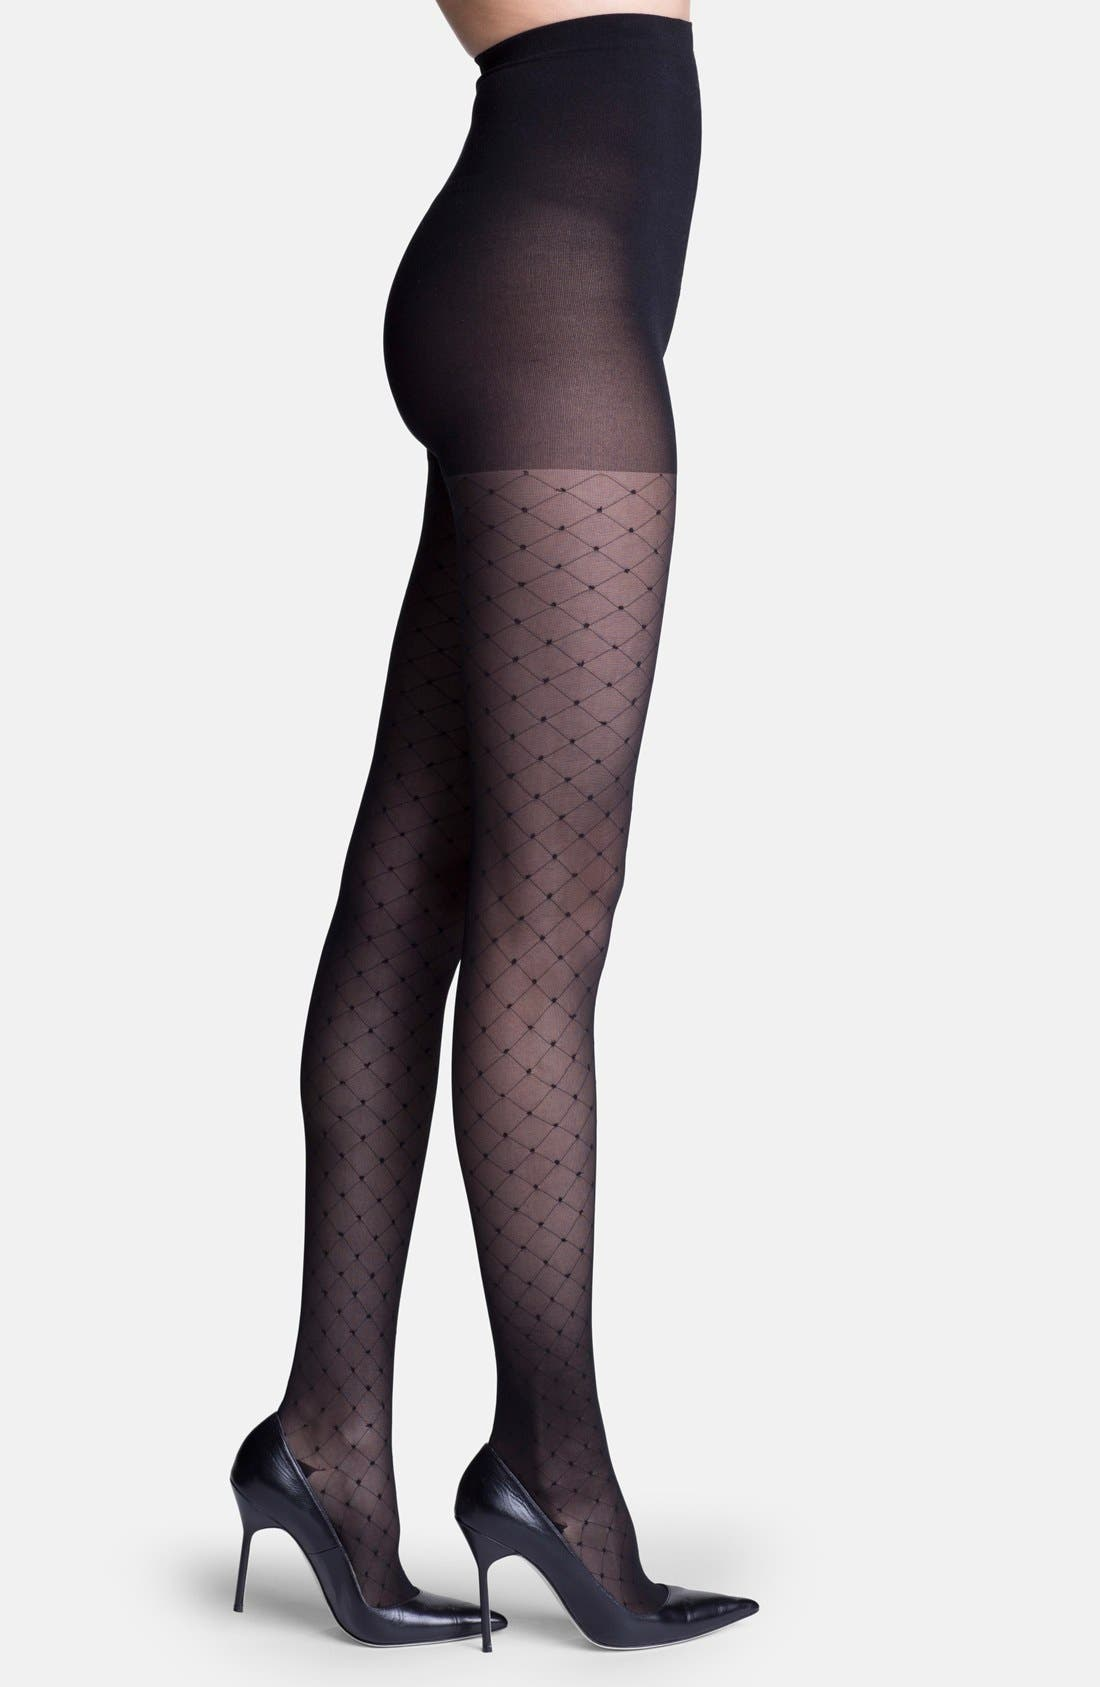 Alternate Image 1 Selected - INSIGNIA by SIGVARIS 'Starlet' Diamond Pattern Compression Pantyhose